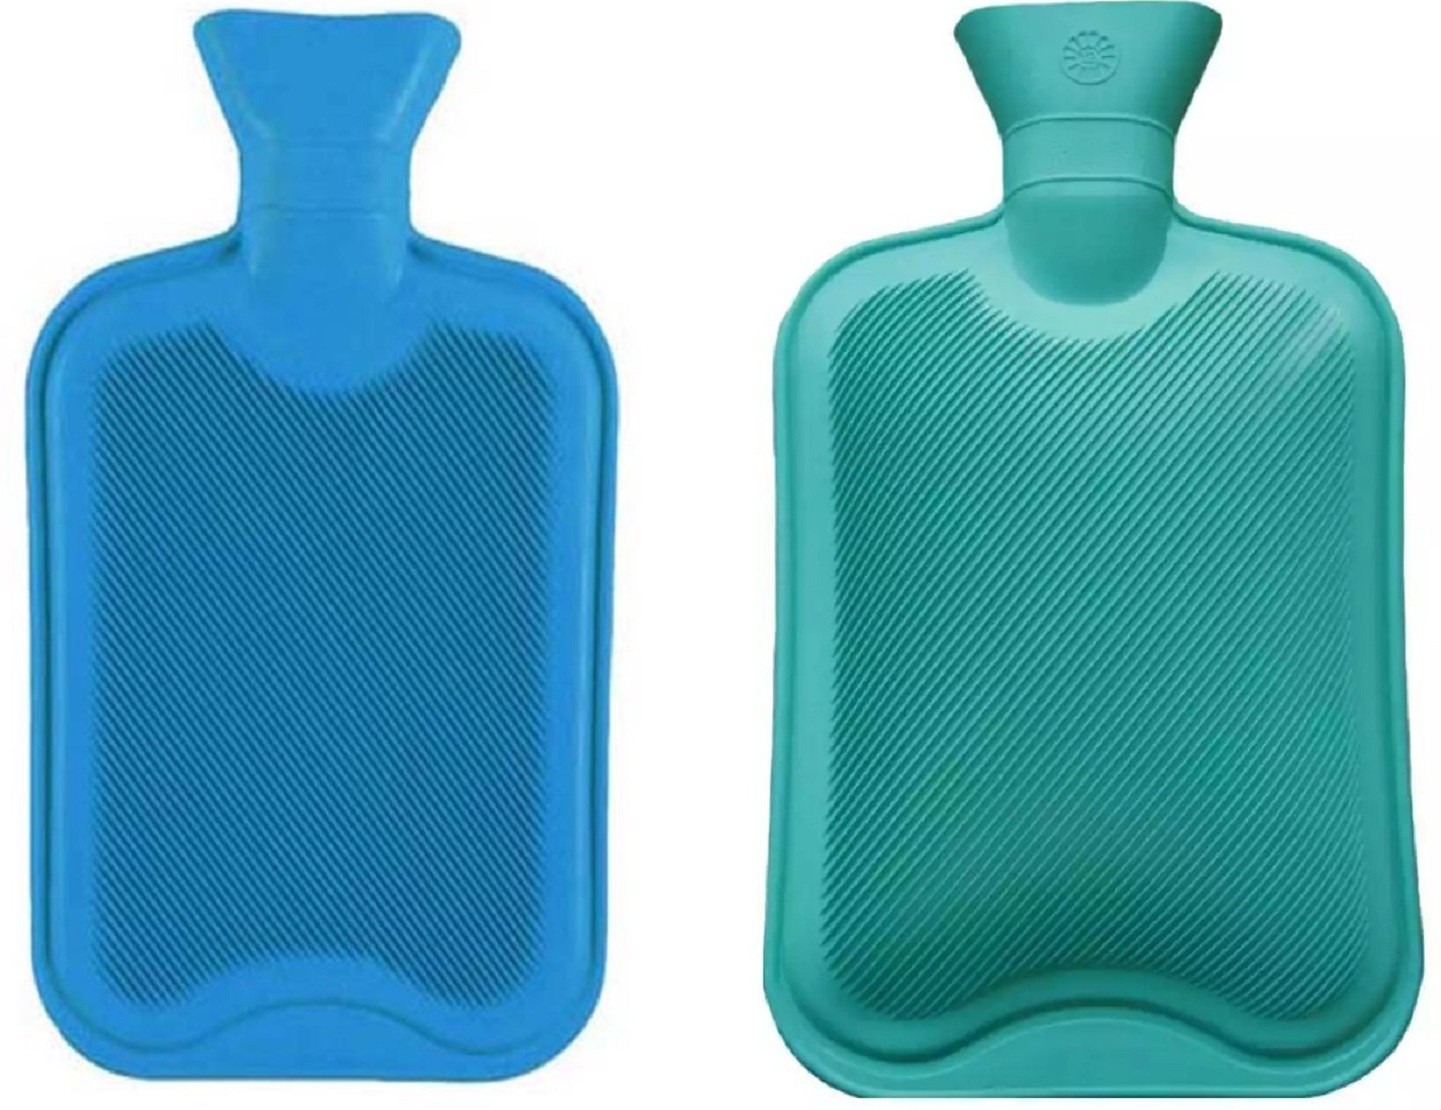 Toolyard Combo Super Deluxe Non-electrical 3 L Hot Water Bag(Blue, Green)